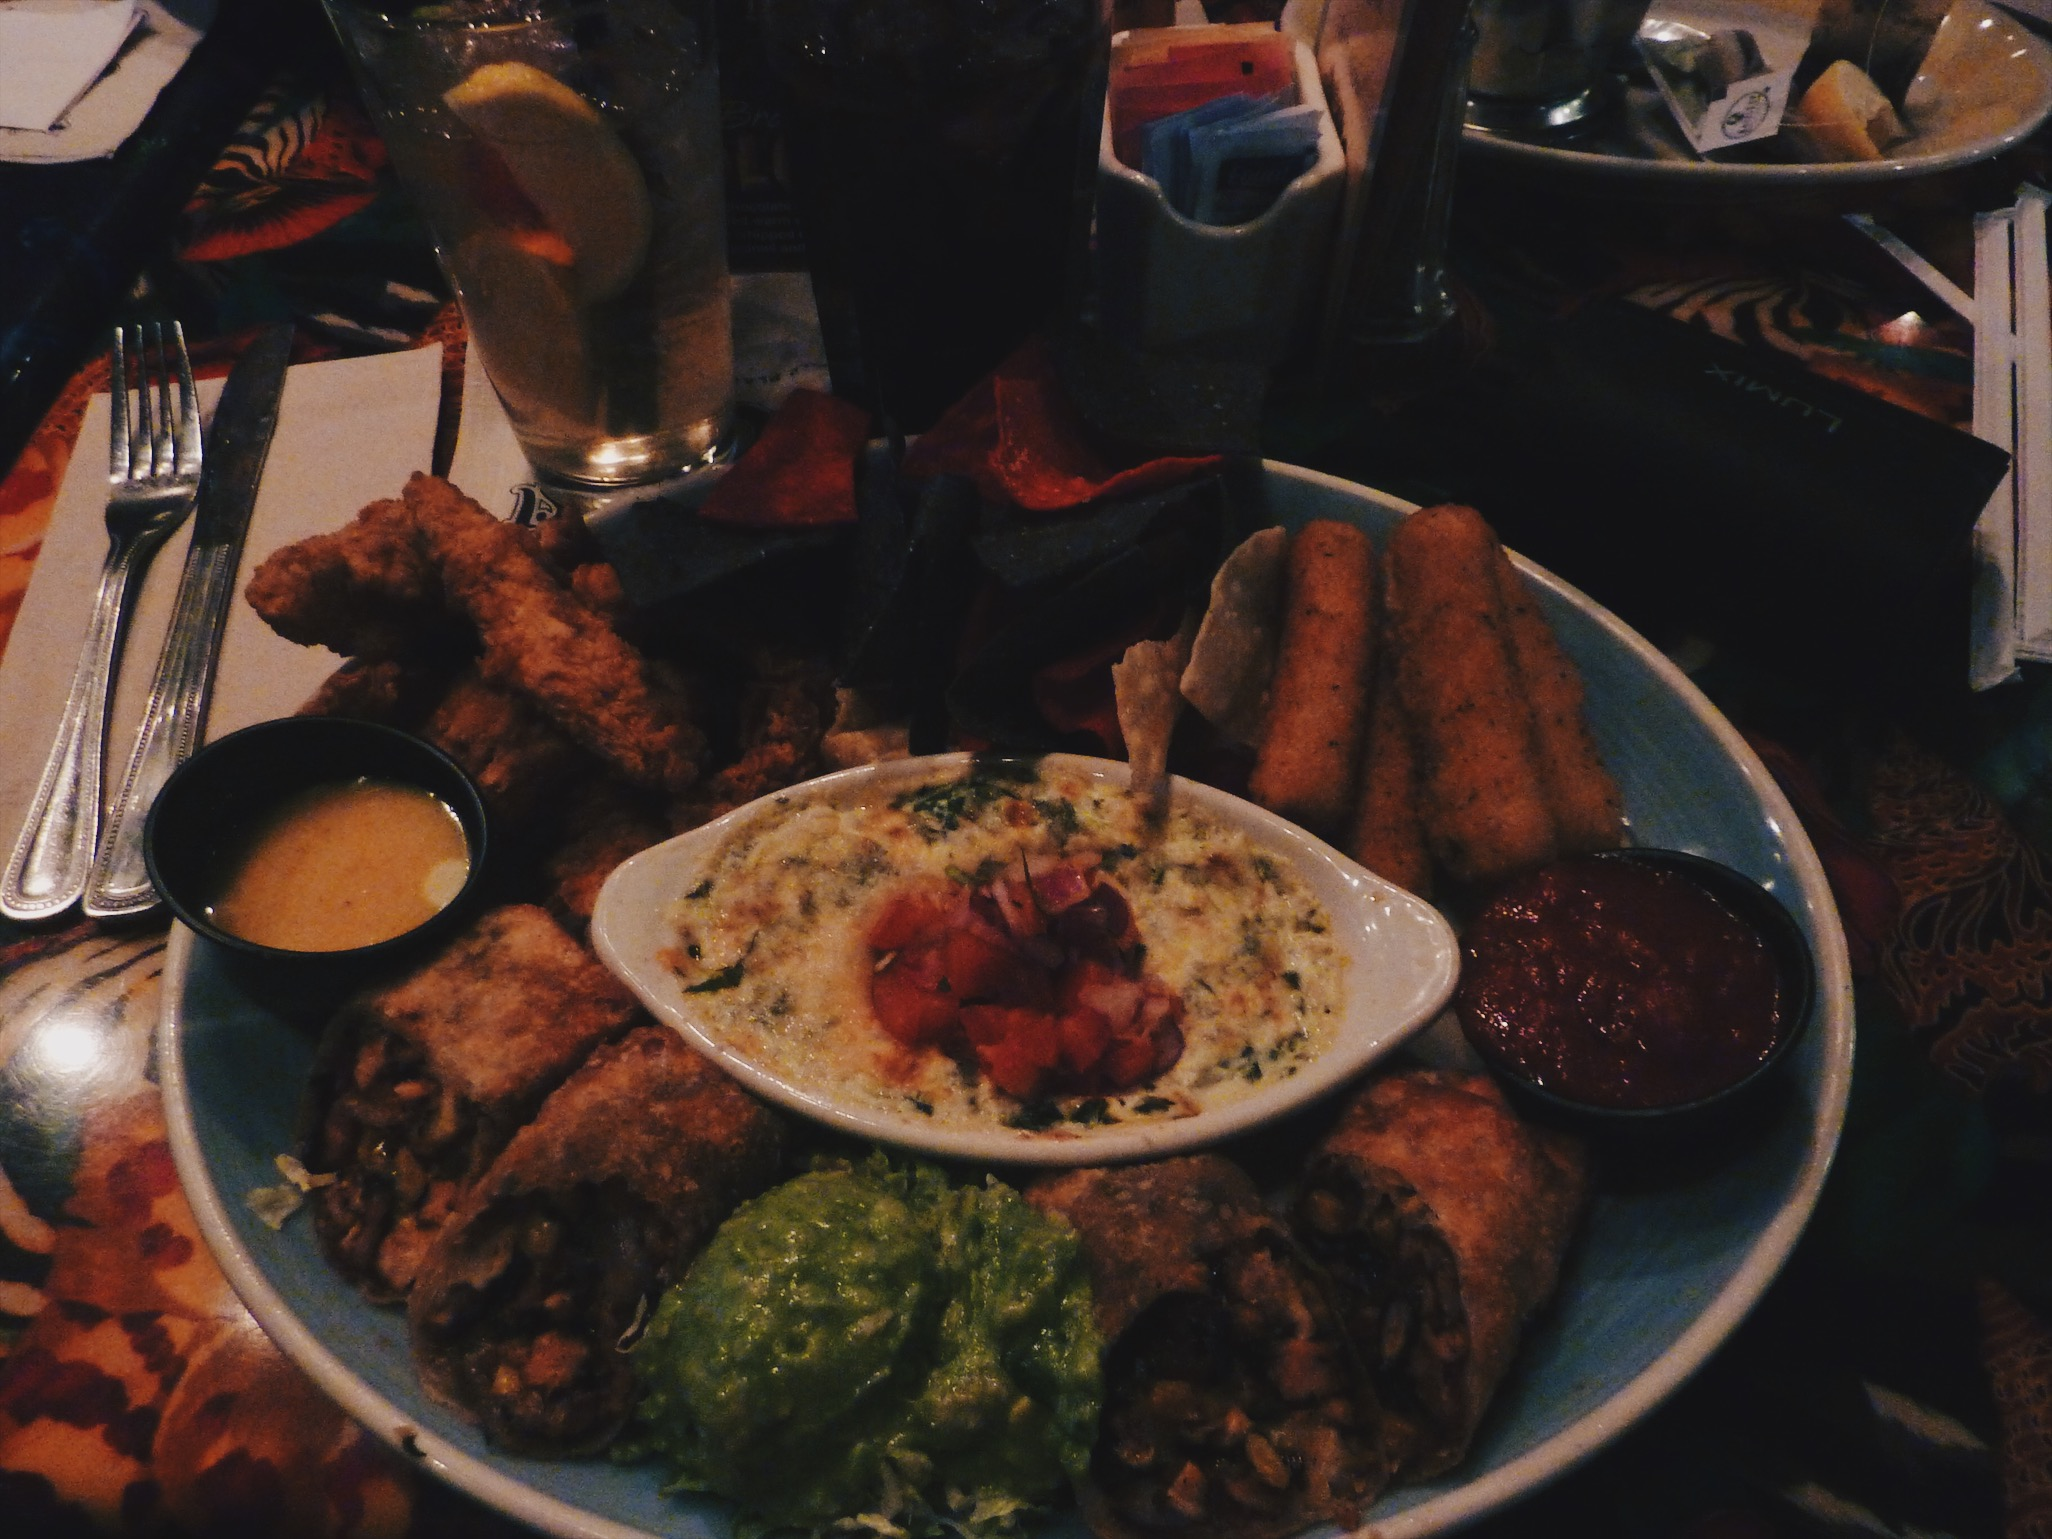 This appertizer we shared with a bigger group one year and it was so yummy! AWESOME APPETIZER ADVENTURE; Chimi-Cha-Chas, Spinach & Artichoke Dip, Cheese Sticks, Chicken Strips, guacamole